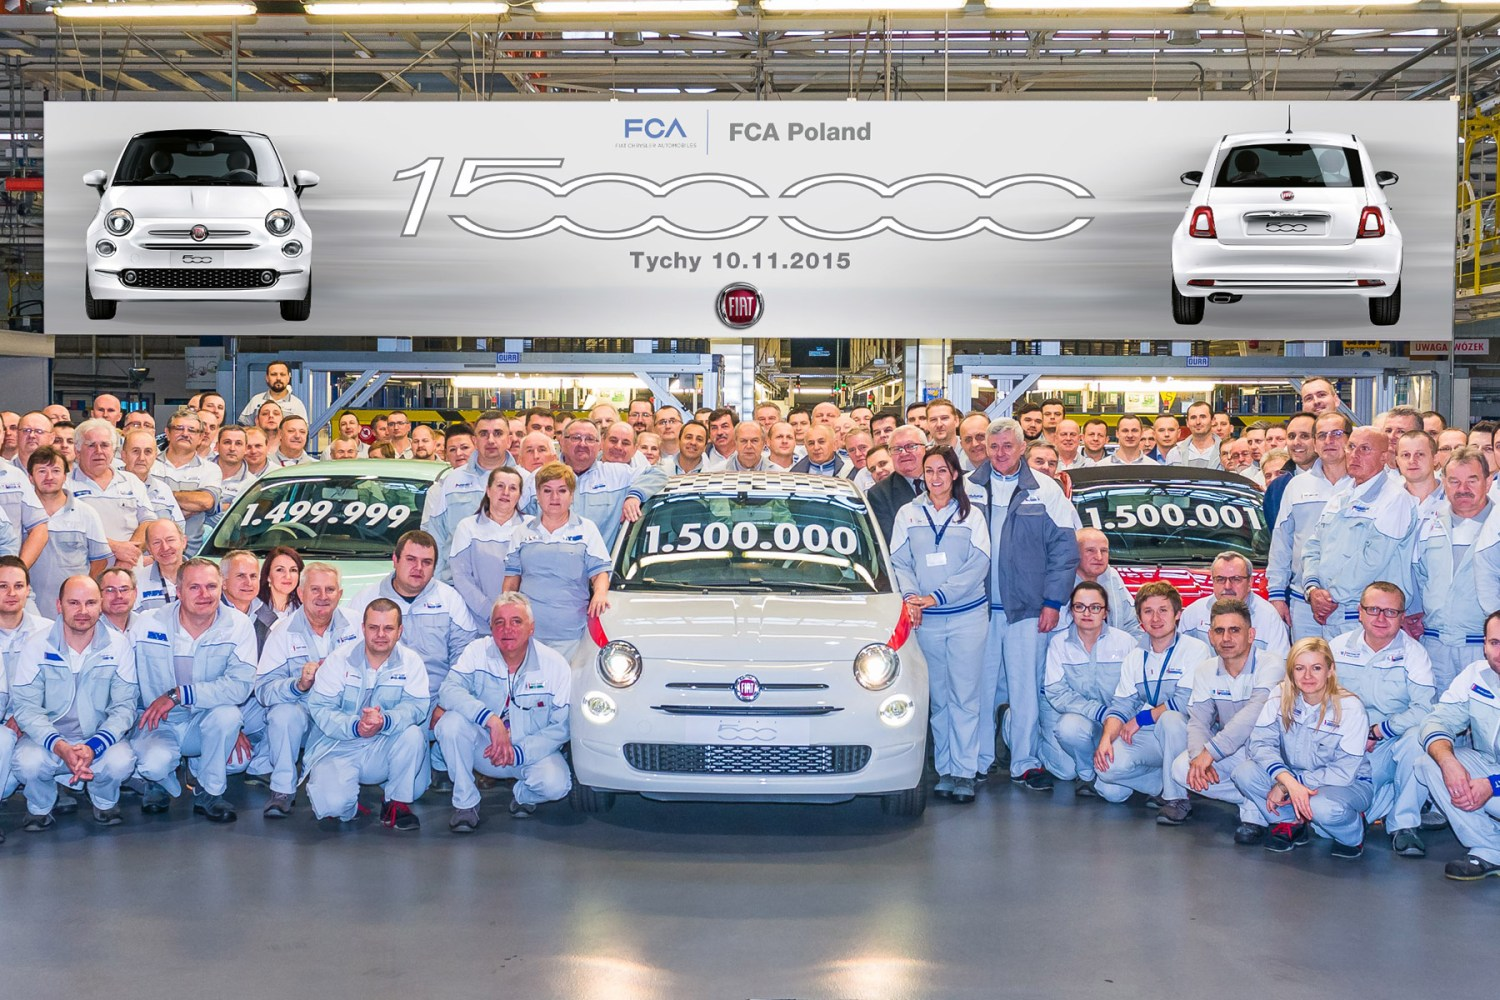 This is why Fiat 500s are EVERYWHERE: 1.5m sold since 2007